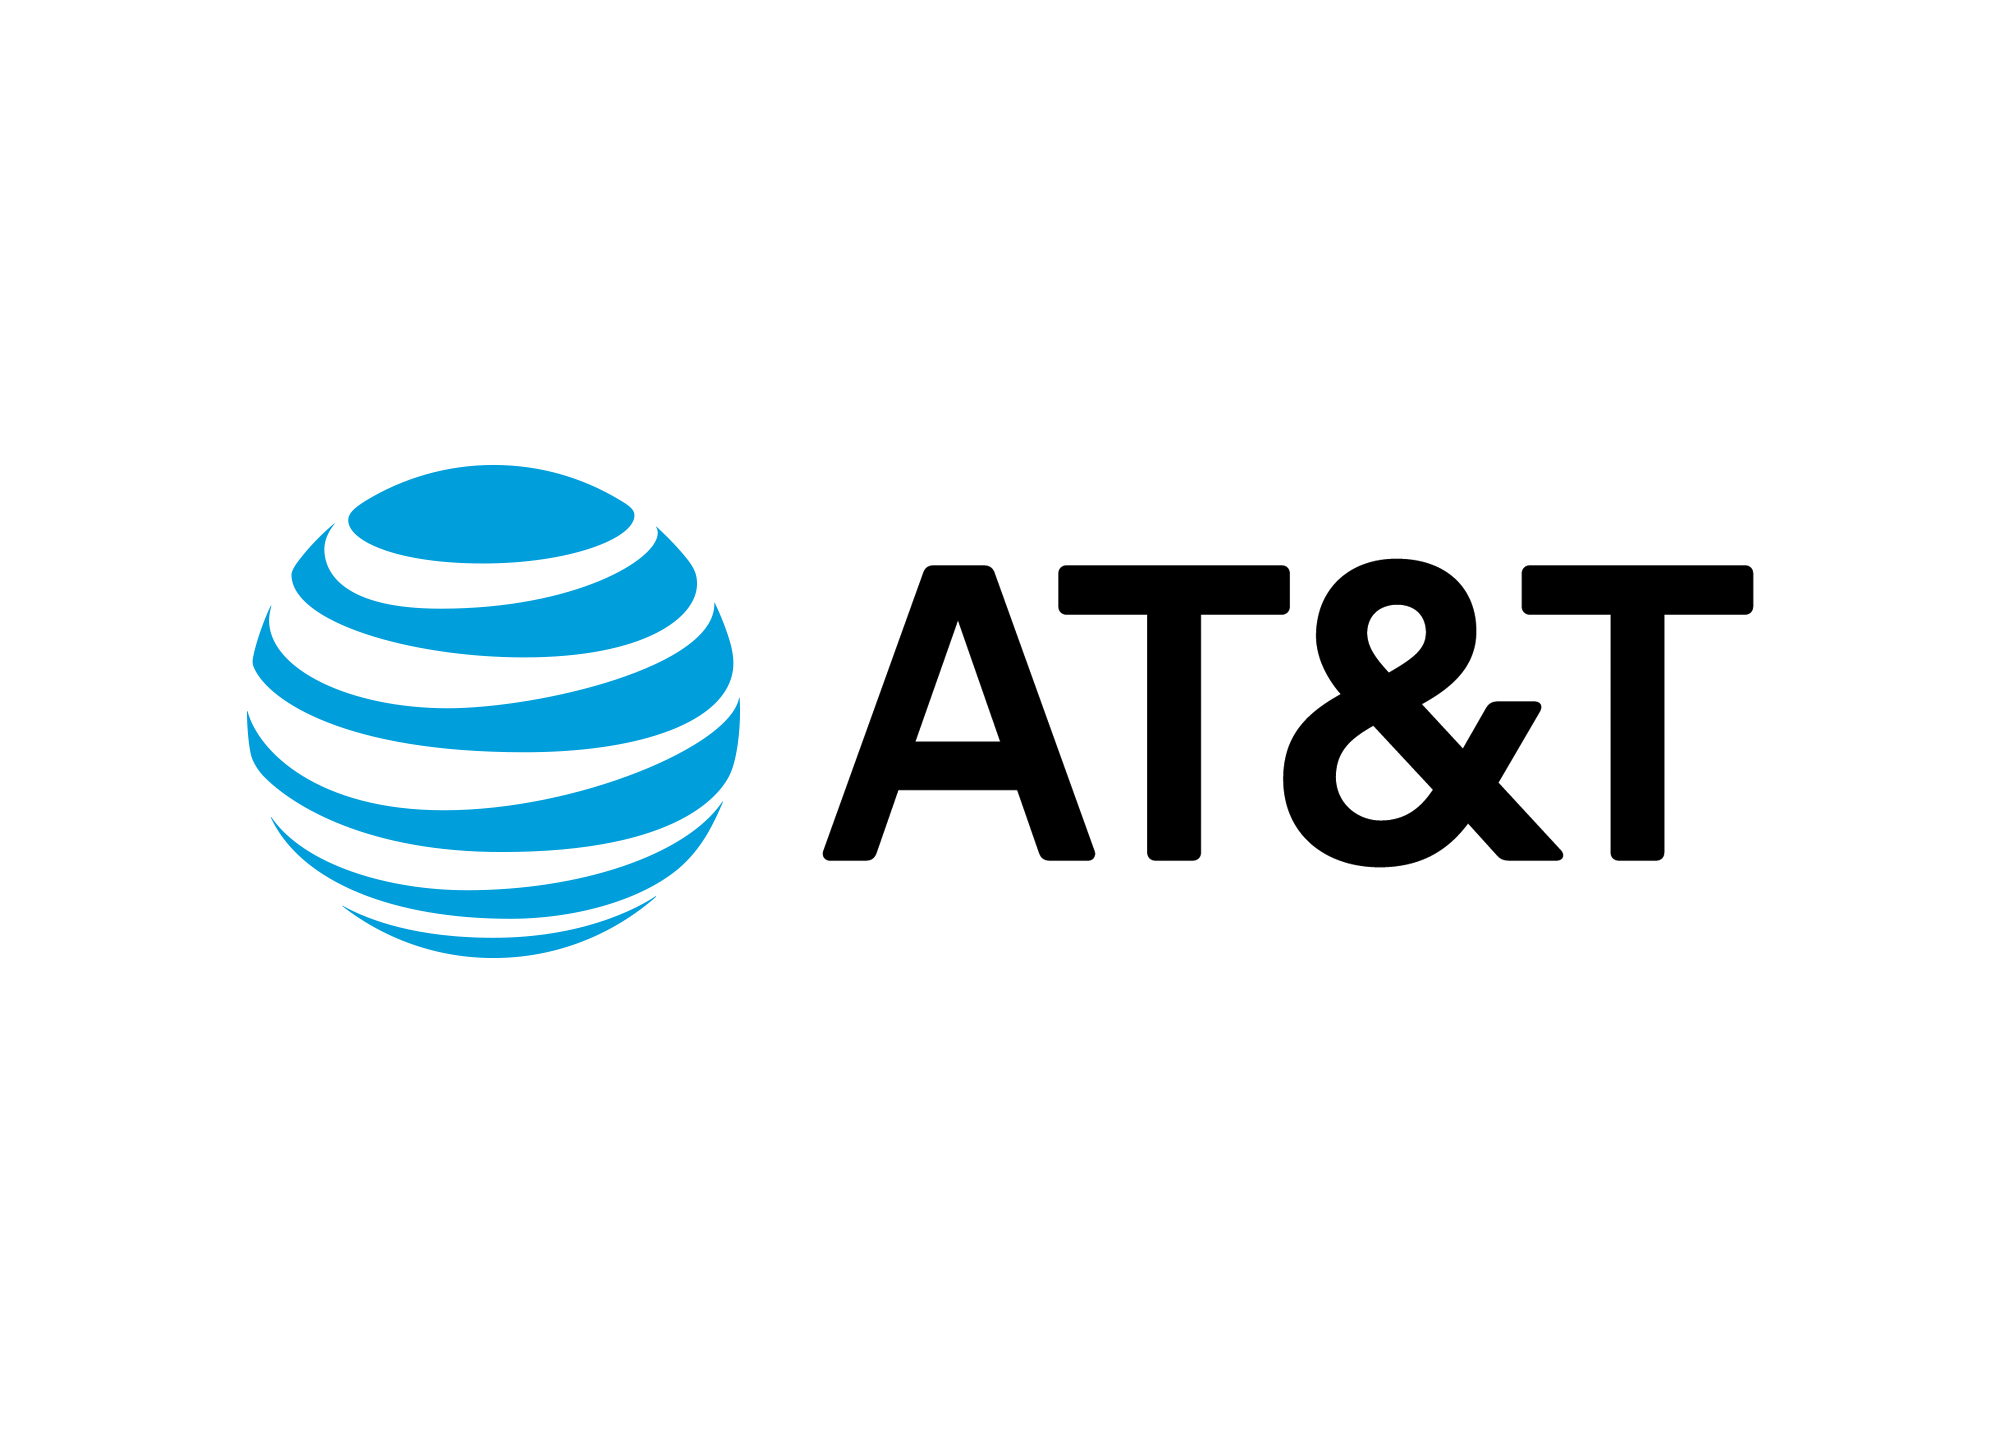 AT&T promises billing relief to customers affected by Hurricane.